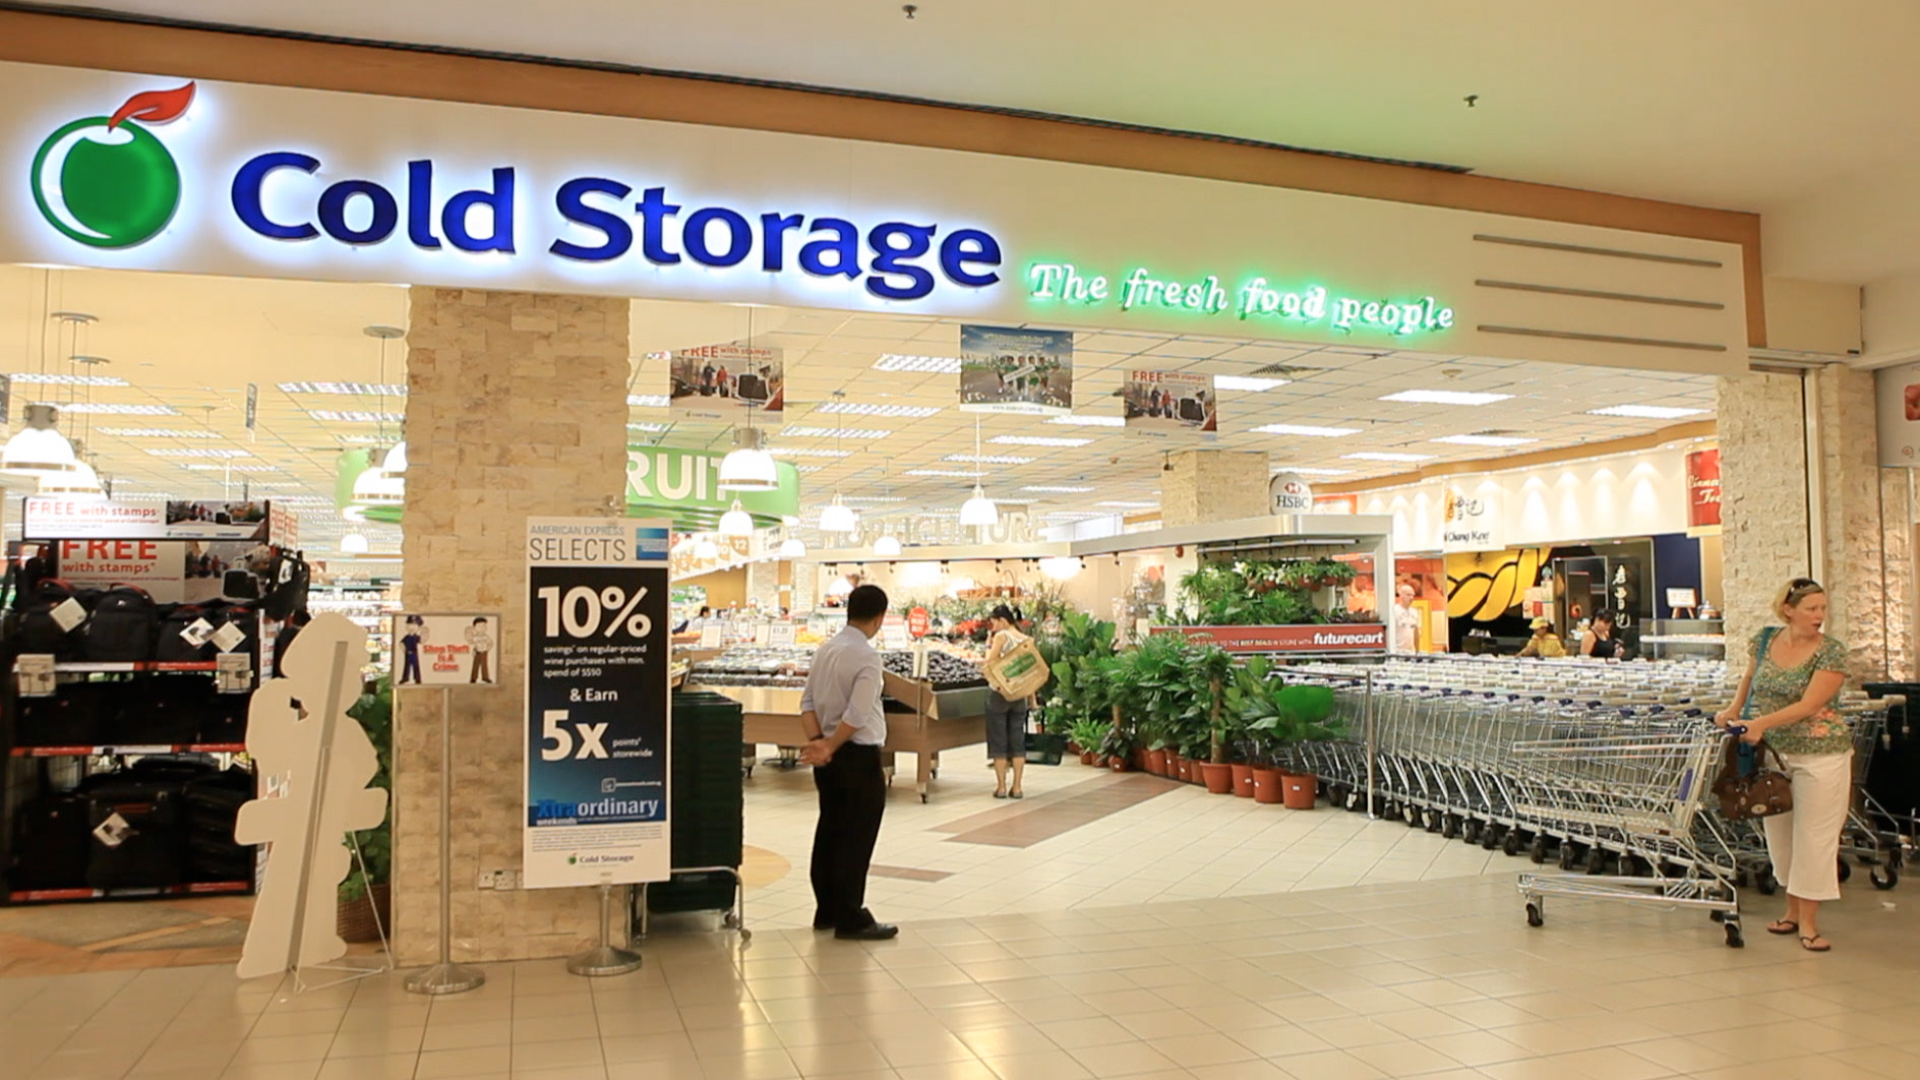 Cold Storage Clearance Sale – Fixed 50% discount on over 4,000 items at all stores islandwide